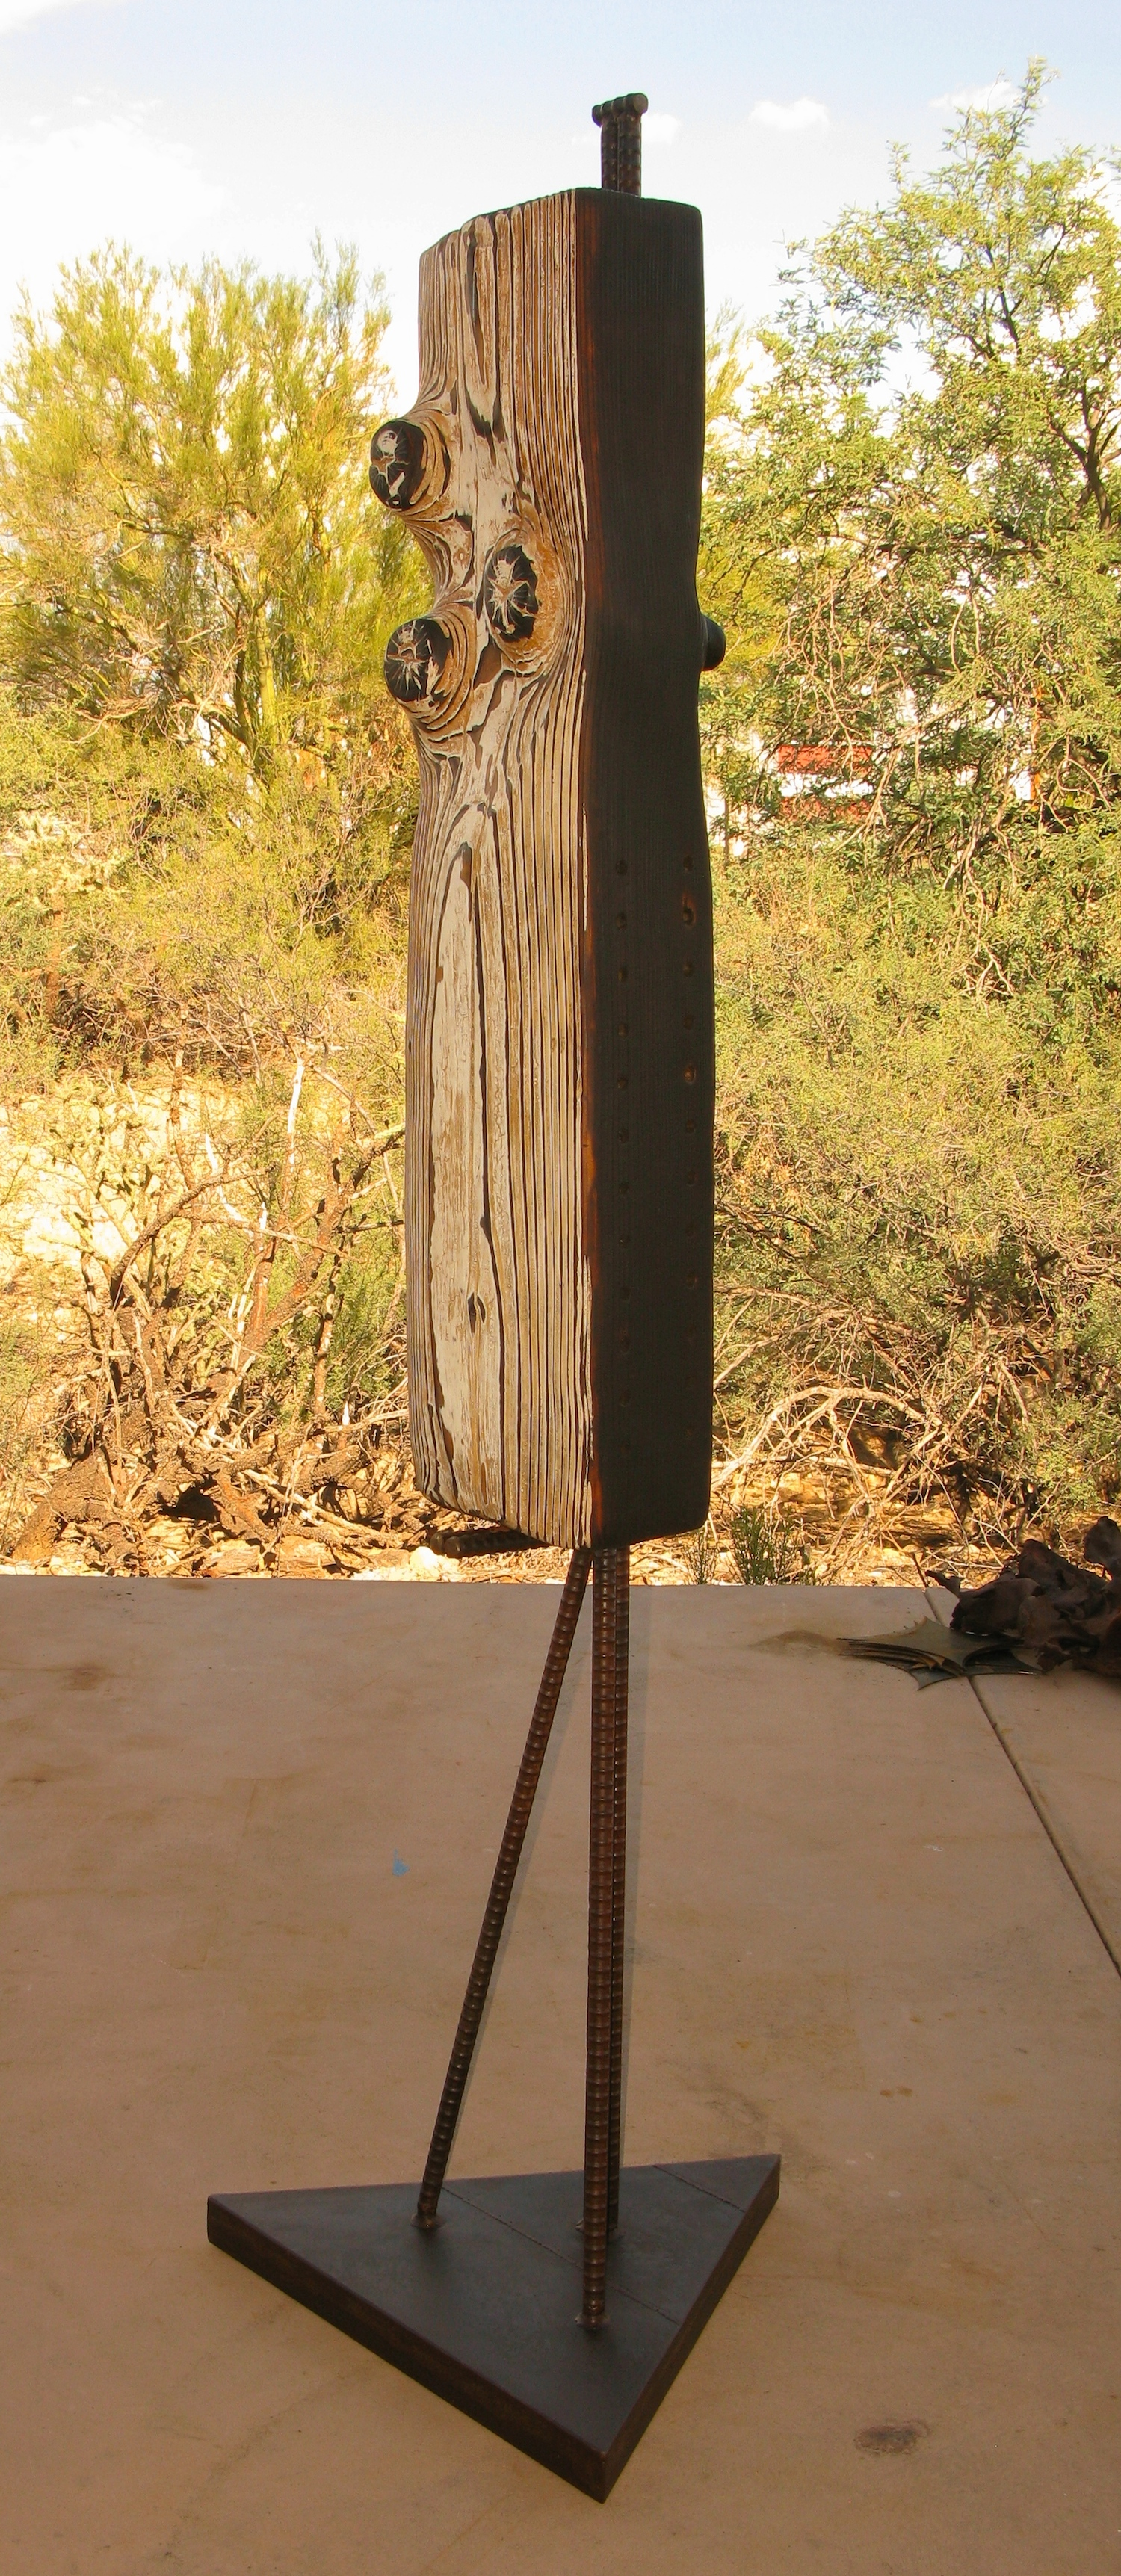 Bee habitat sculpture with triangular base